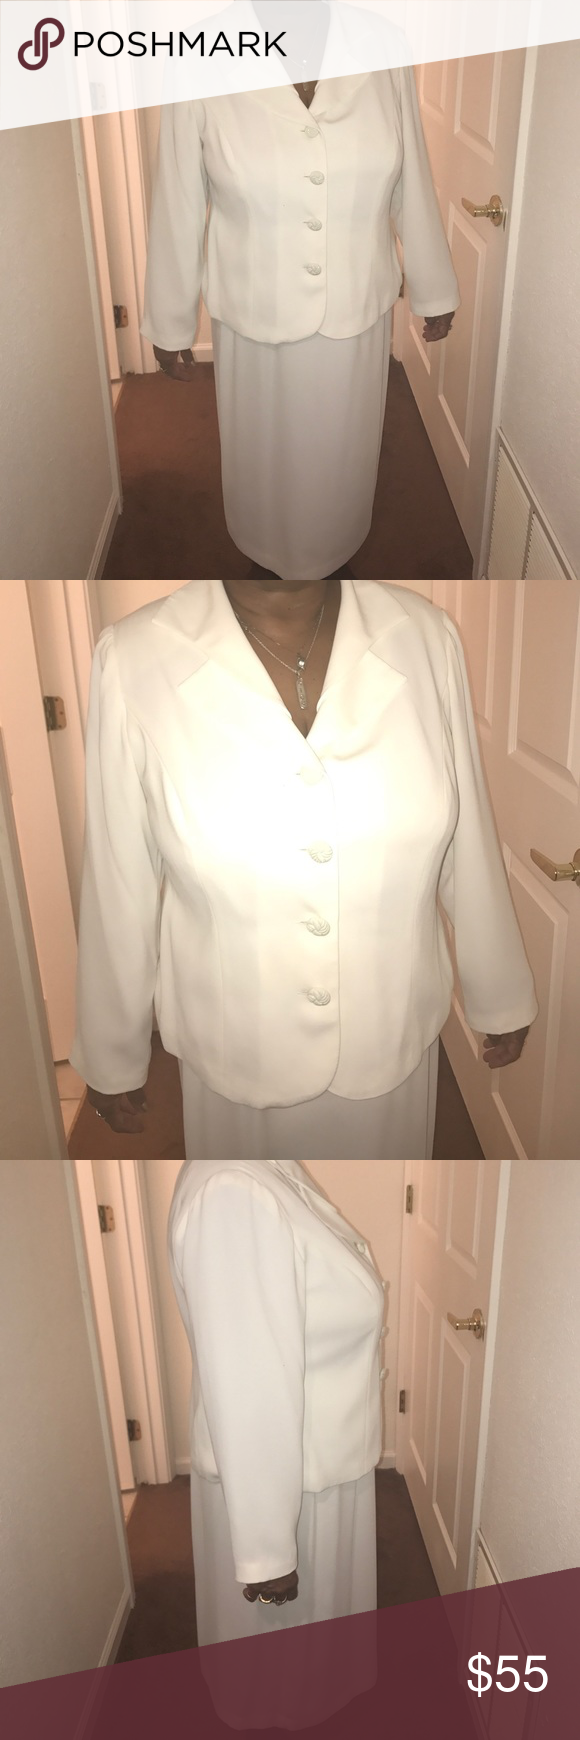 2-PIECE WOMENS SUIT🎉🎉 This is a ivory Dana Kay Suit with 4 buttons on the front, small split in back, skirt has elastic stretch with Zipper and button. This is a 16W Dresses